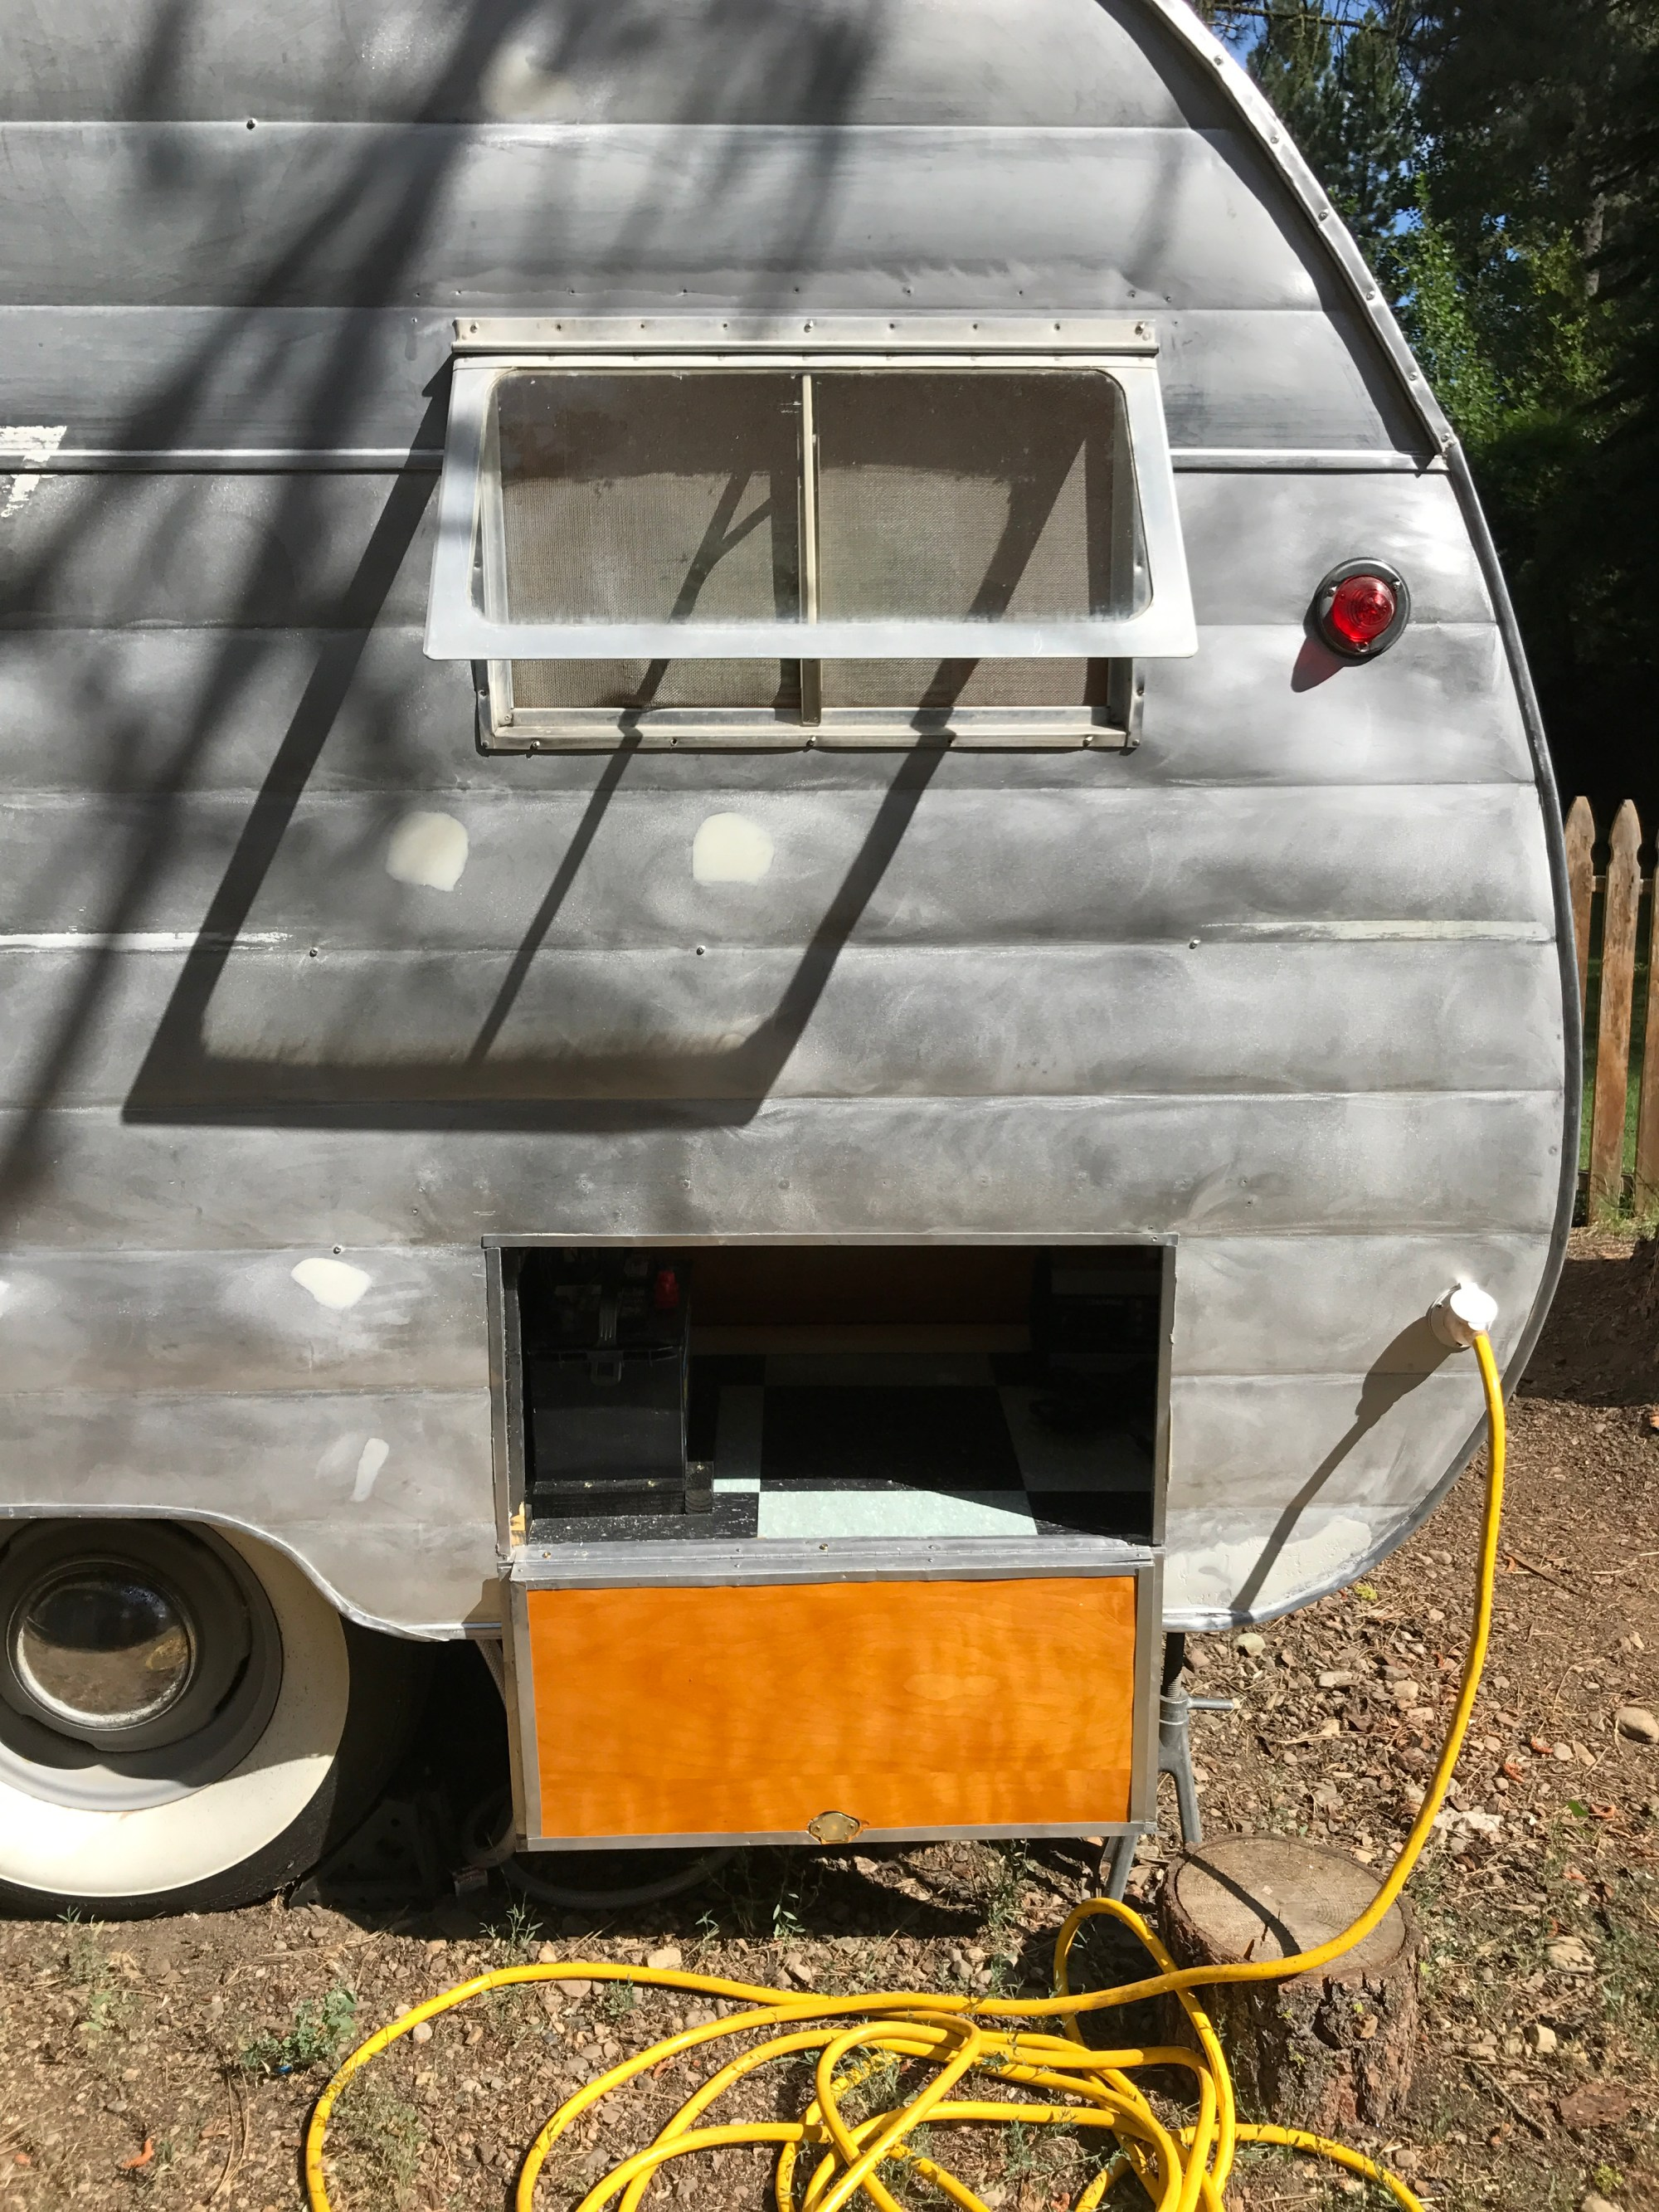 hight resolution of because my 1956 shasta wasn t equipped with a shore power outlet this was all new to me after i purchased the outlet i realized that i needed a power